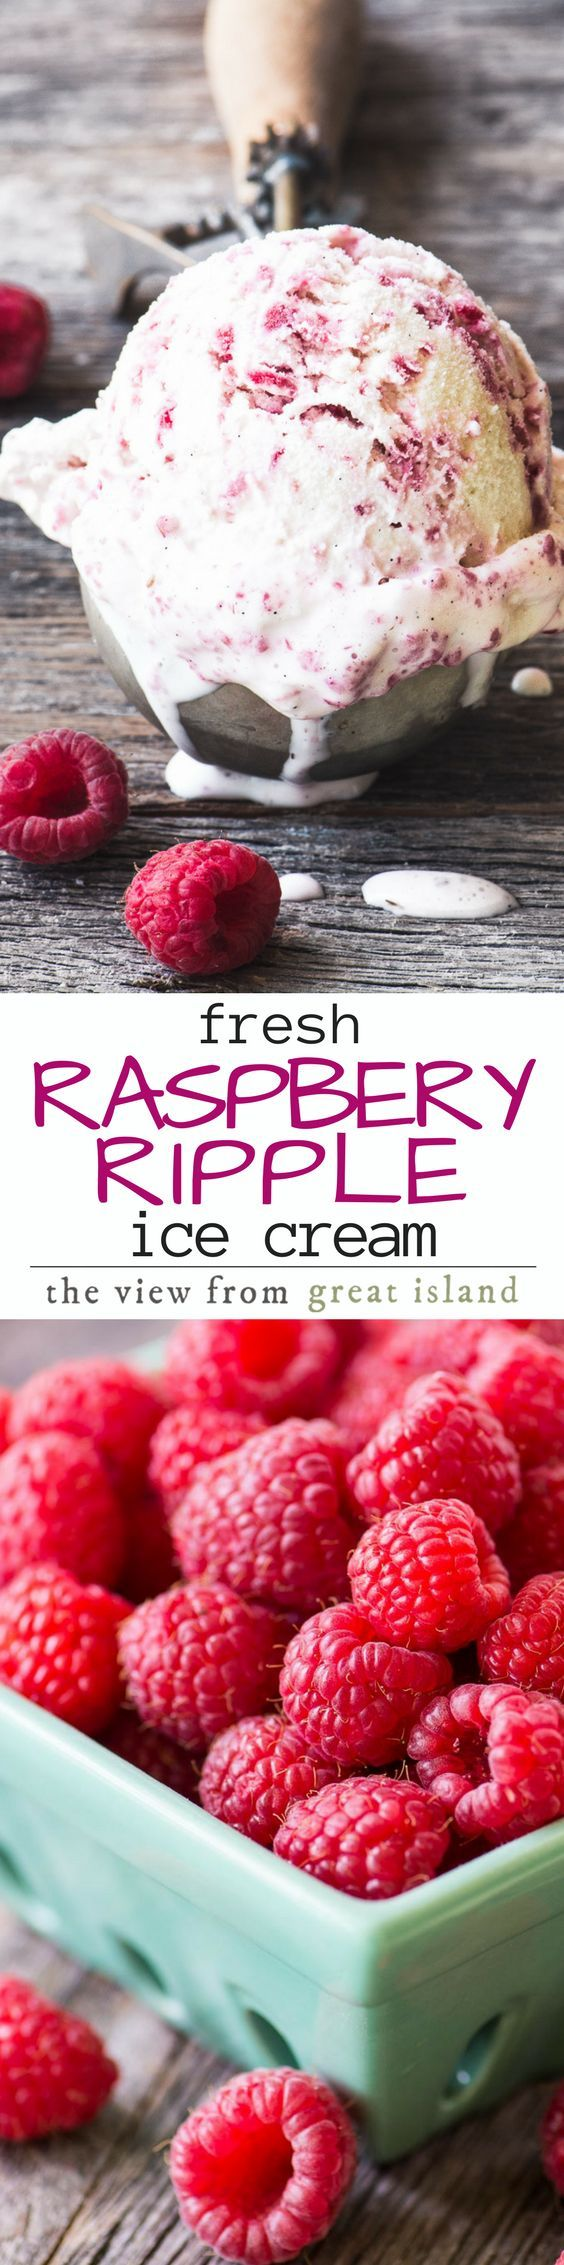 Raspberry Ripple Ice Cream ~ I can remember ordering it as a kid, there's something about raspberries that just screams summertime, right?   The fresh flavor of my homemade raspberry ripple ice cream is delightful and something you won't find in the freezer aisle or ice cream shop.